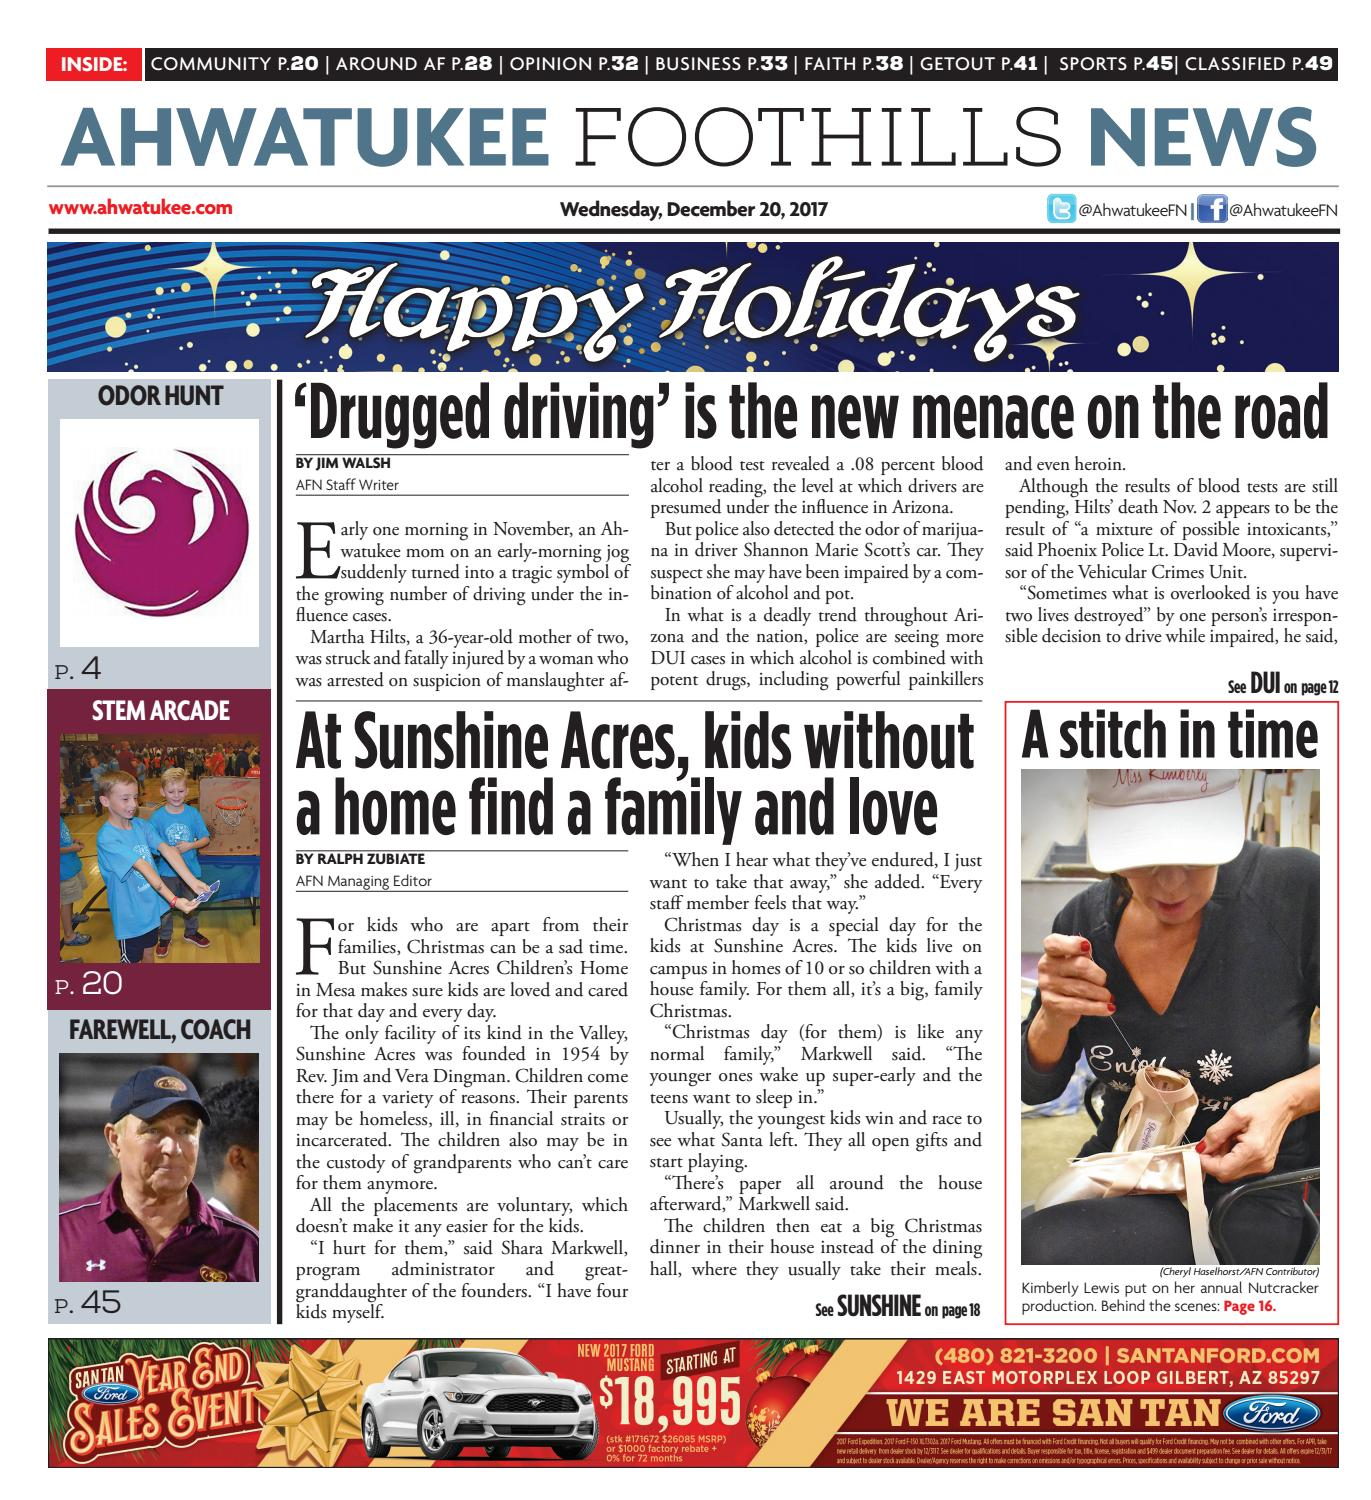 0cdce1111d4f4 Ahwatukee Foothills News - December 20, 2017 by Times Media Group - issuu